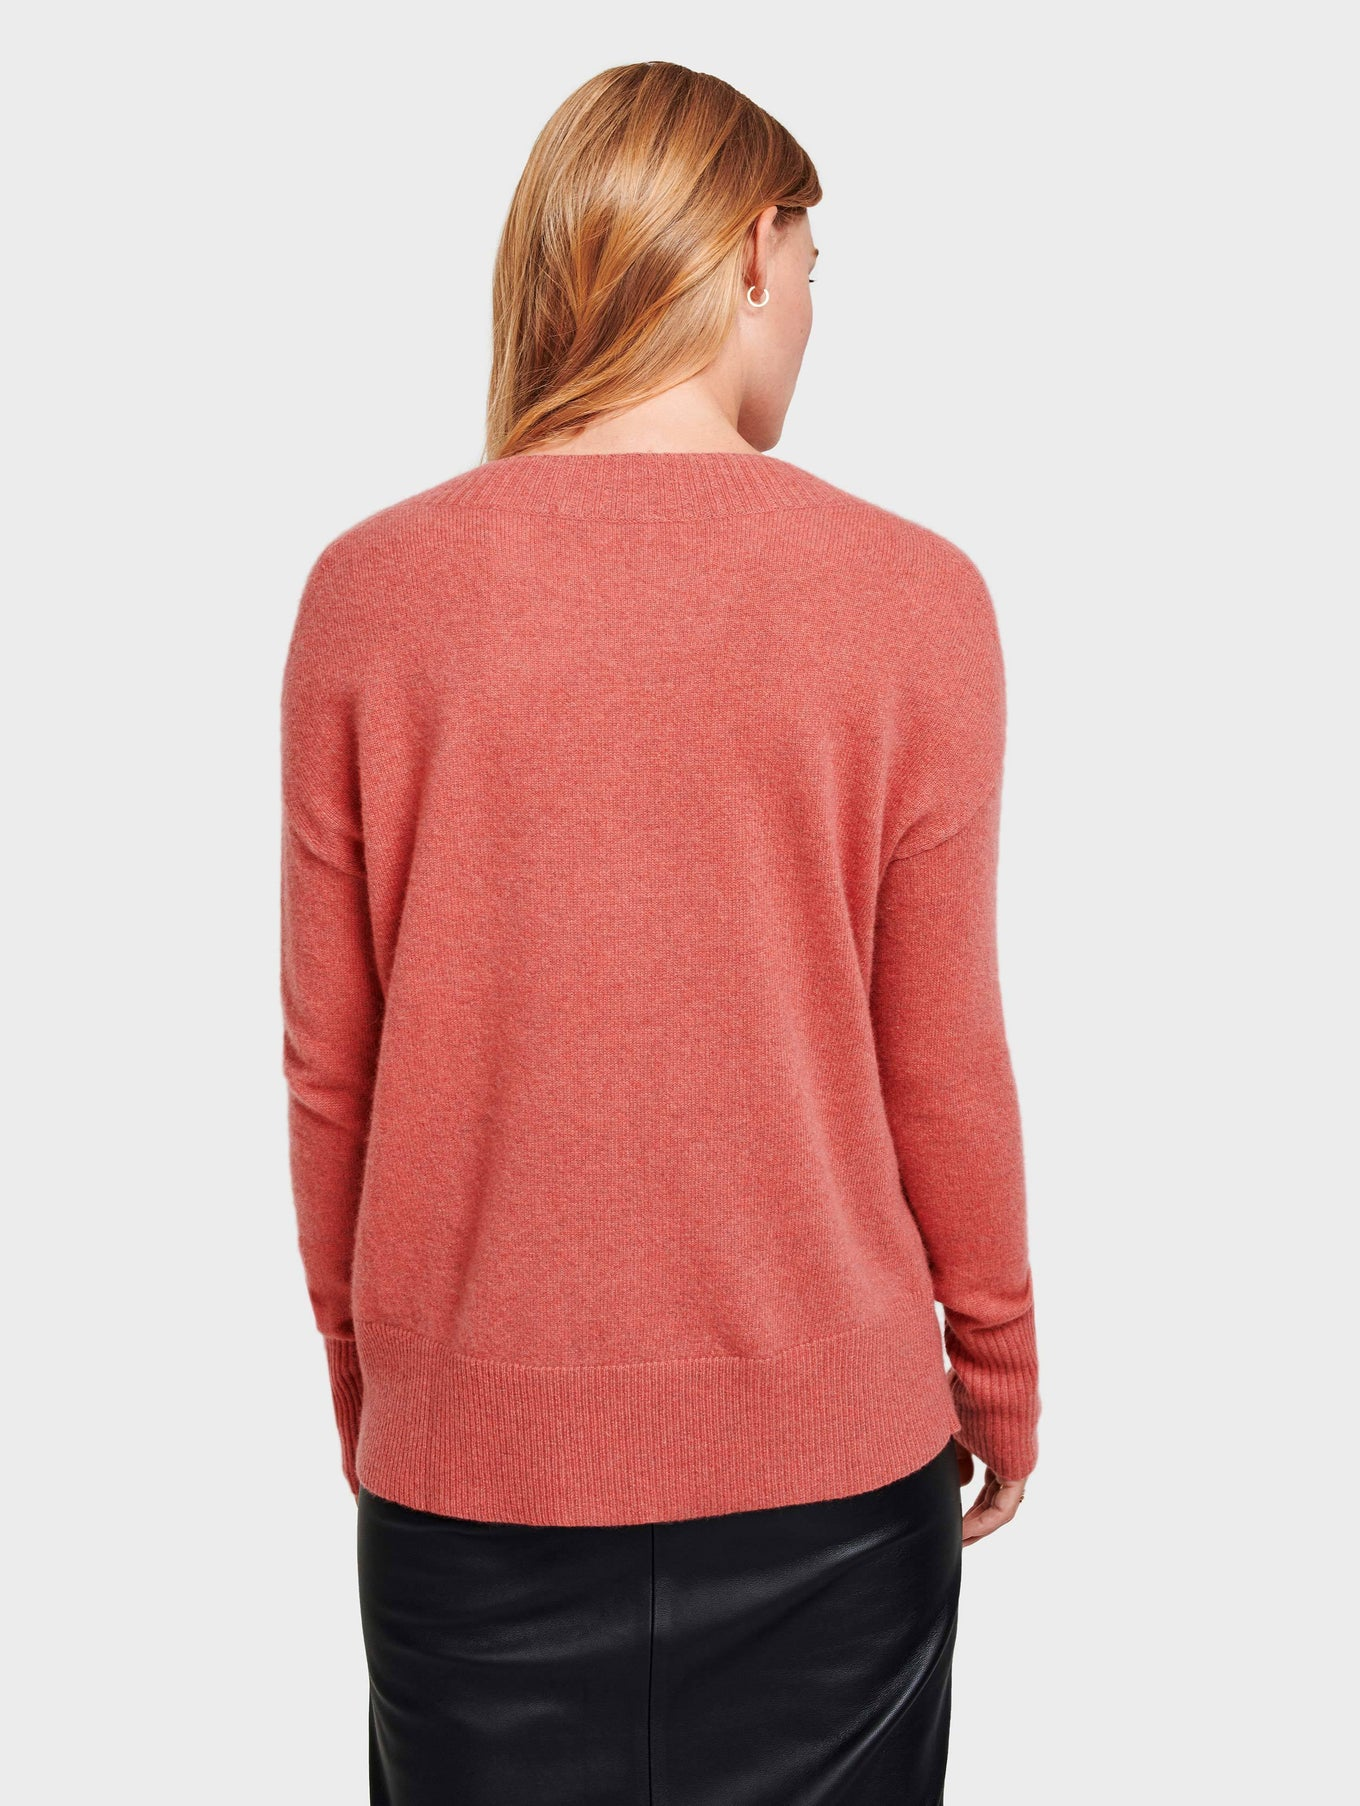 Cashmere Wide Rib V Neck - Pink Opal Heather - Image 4